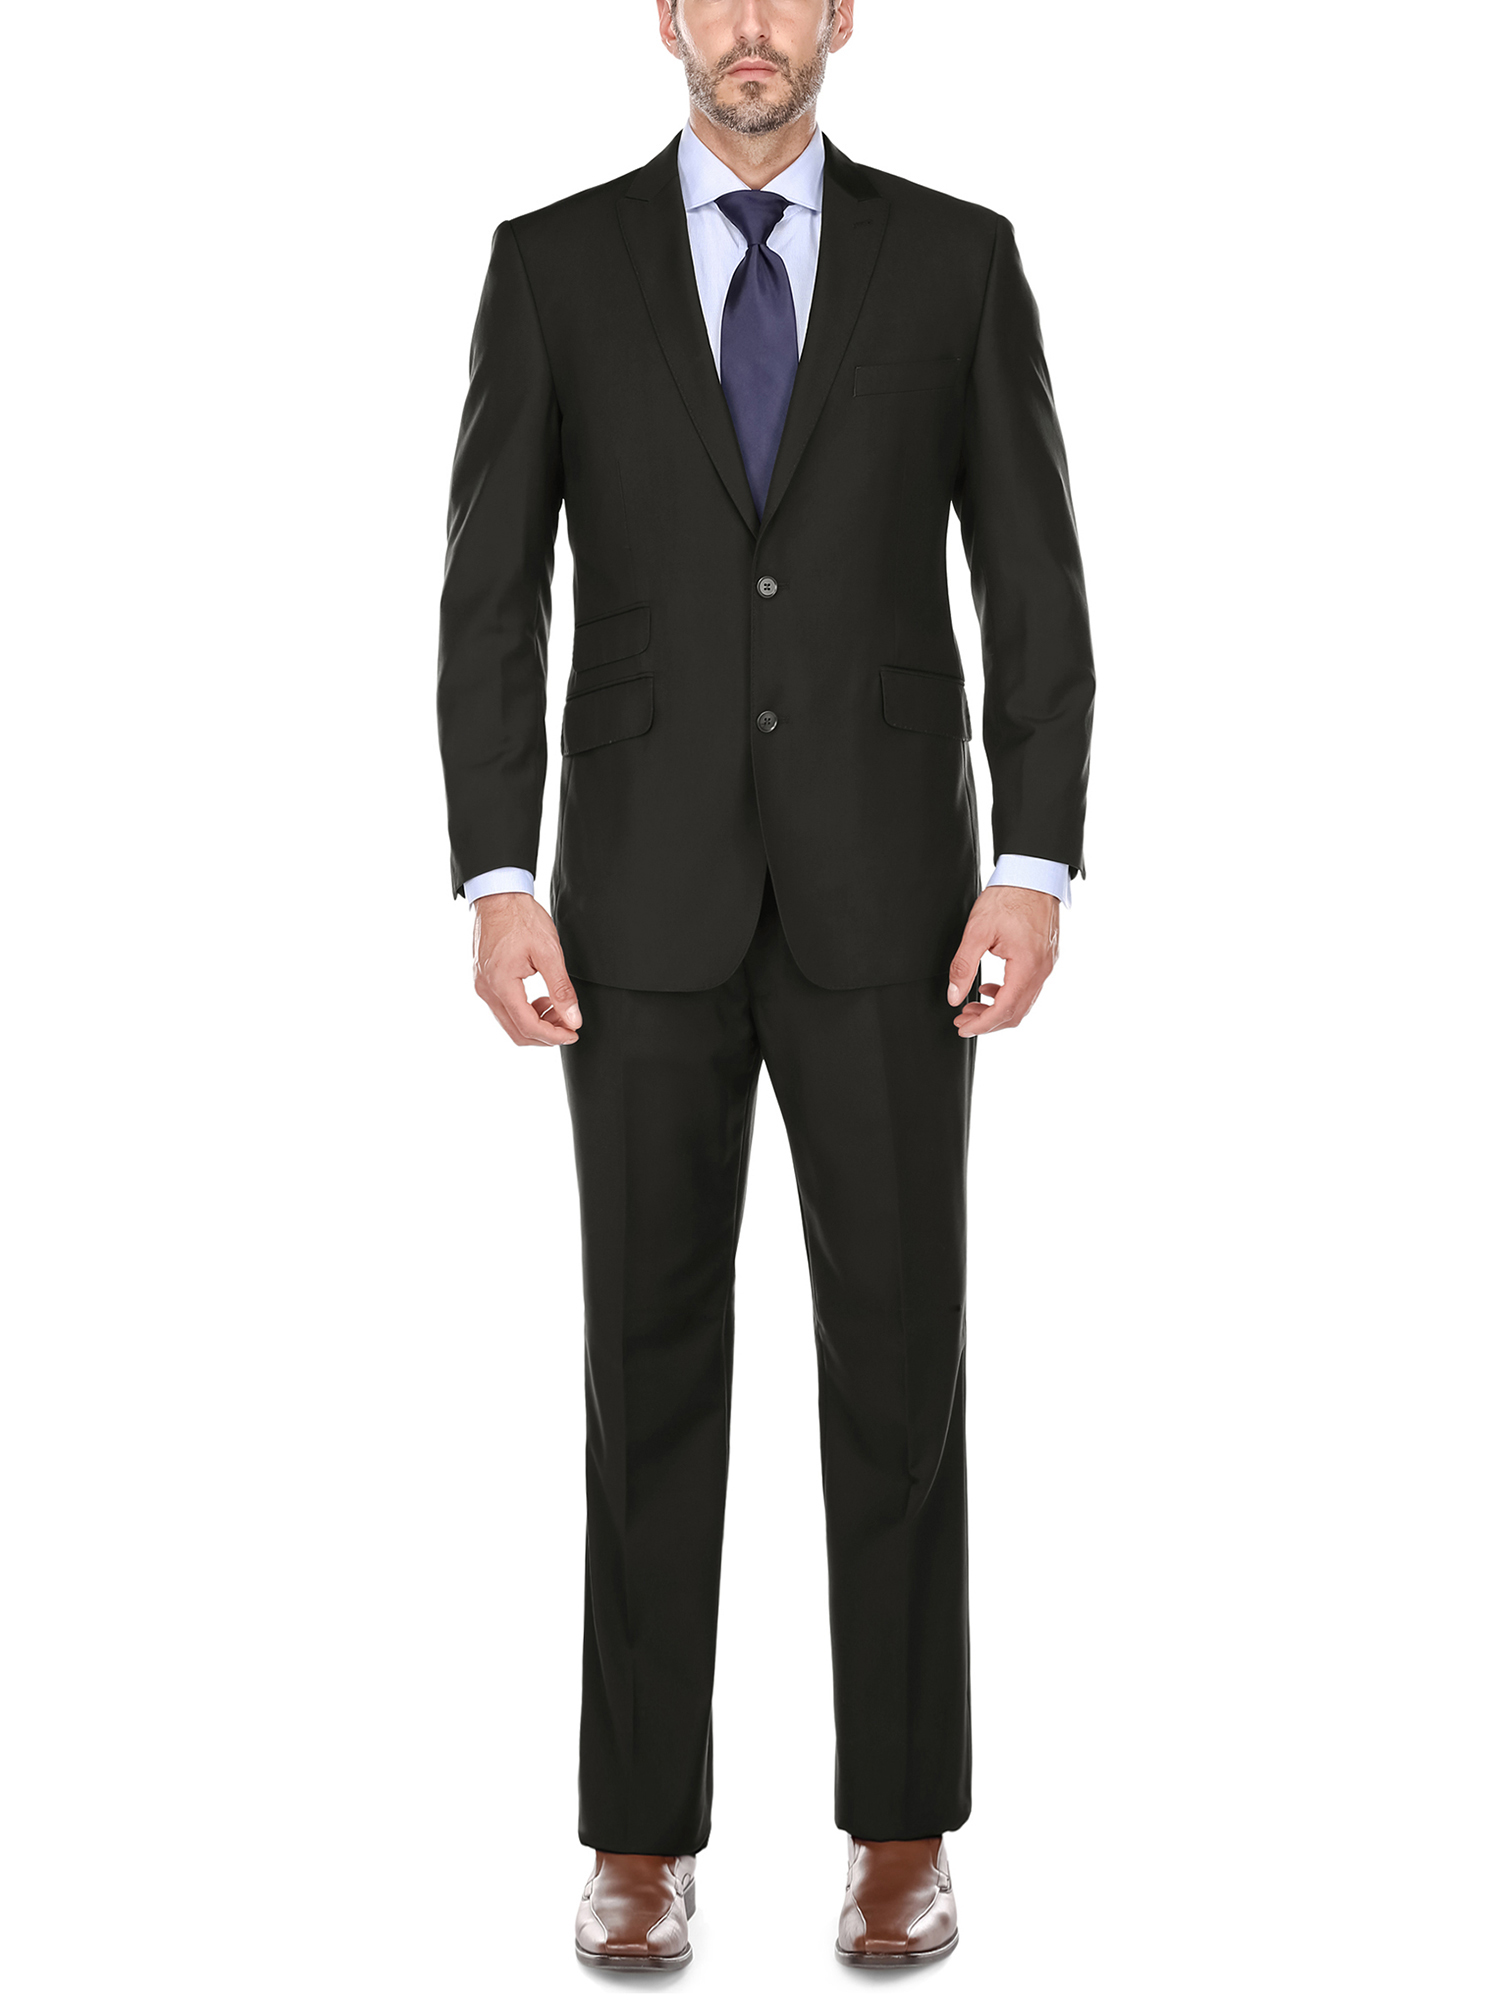 Men' s Black Peak Lapel Classic Fit Two Piece Suit